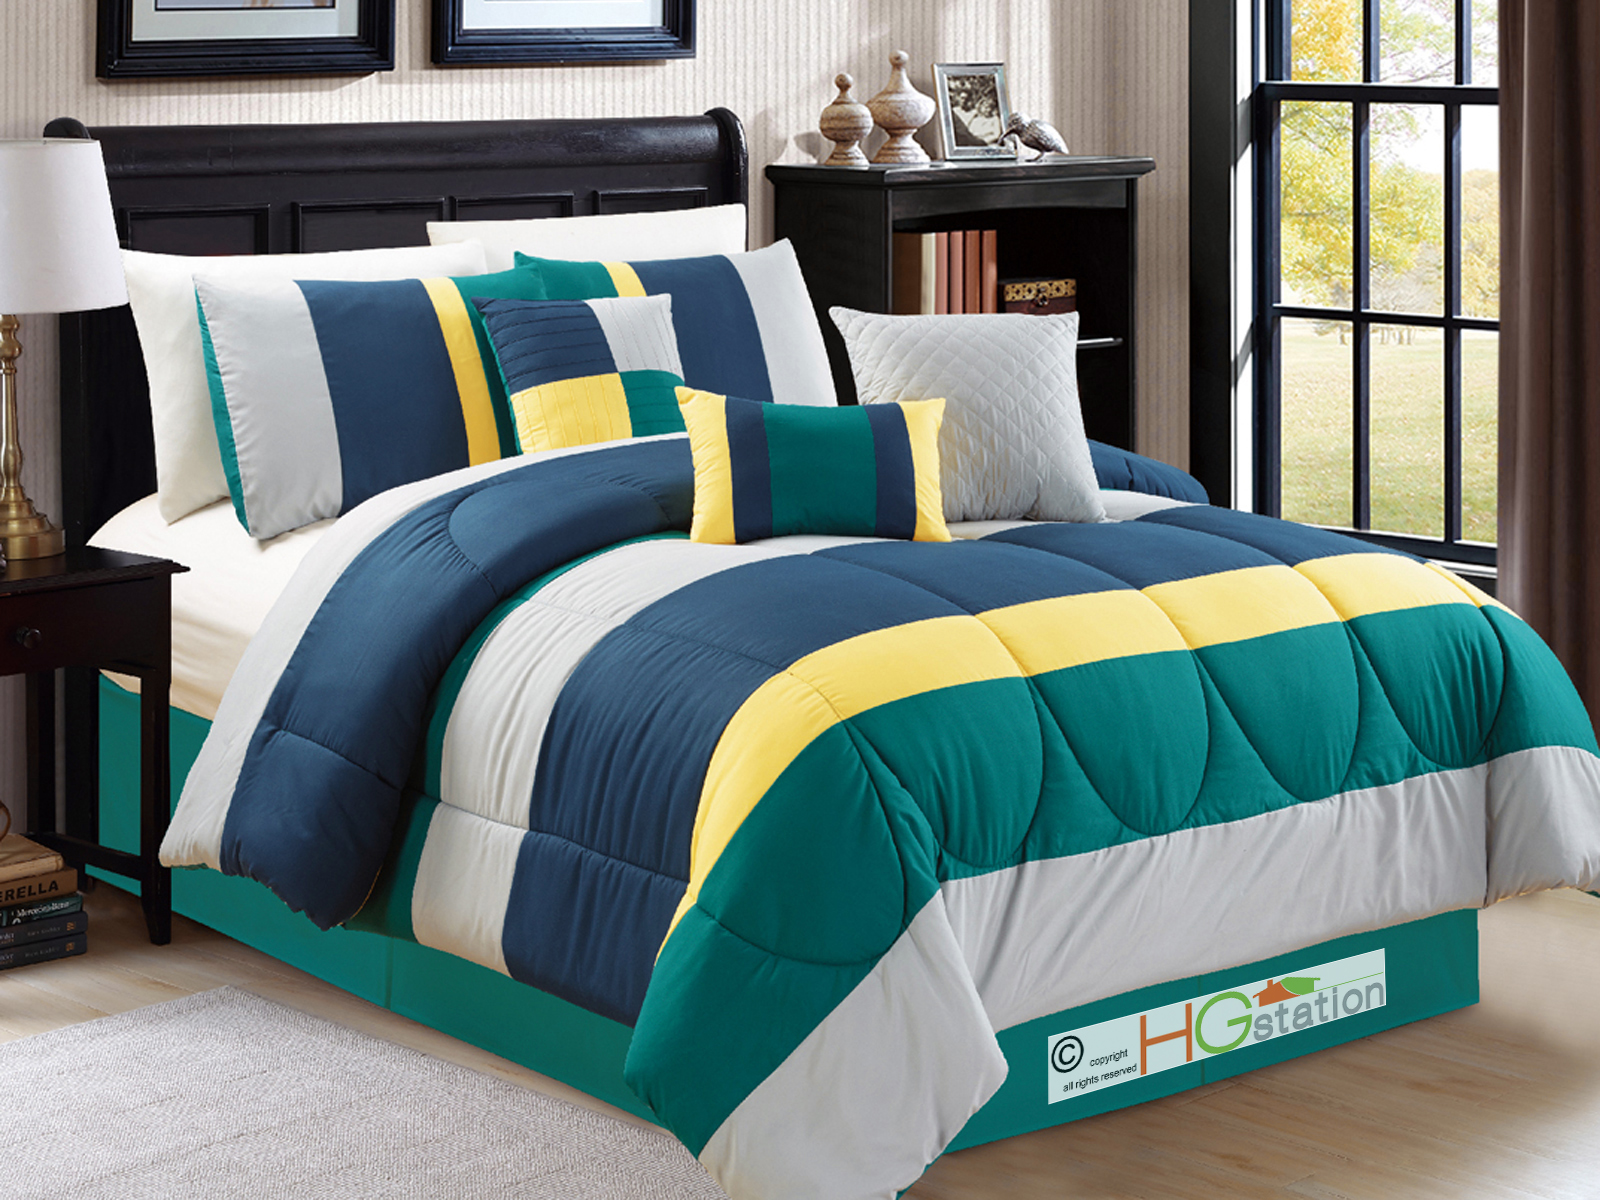 gray and teal bedroom 7 pc modern striped comforter set teal green navy blue 15452